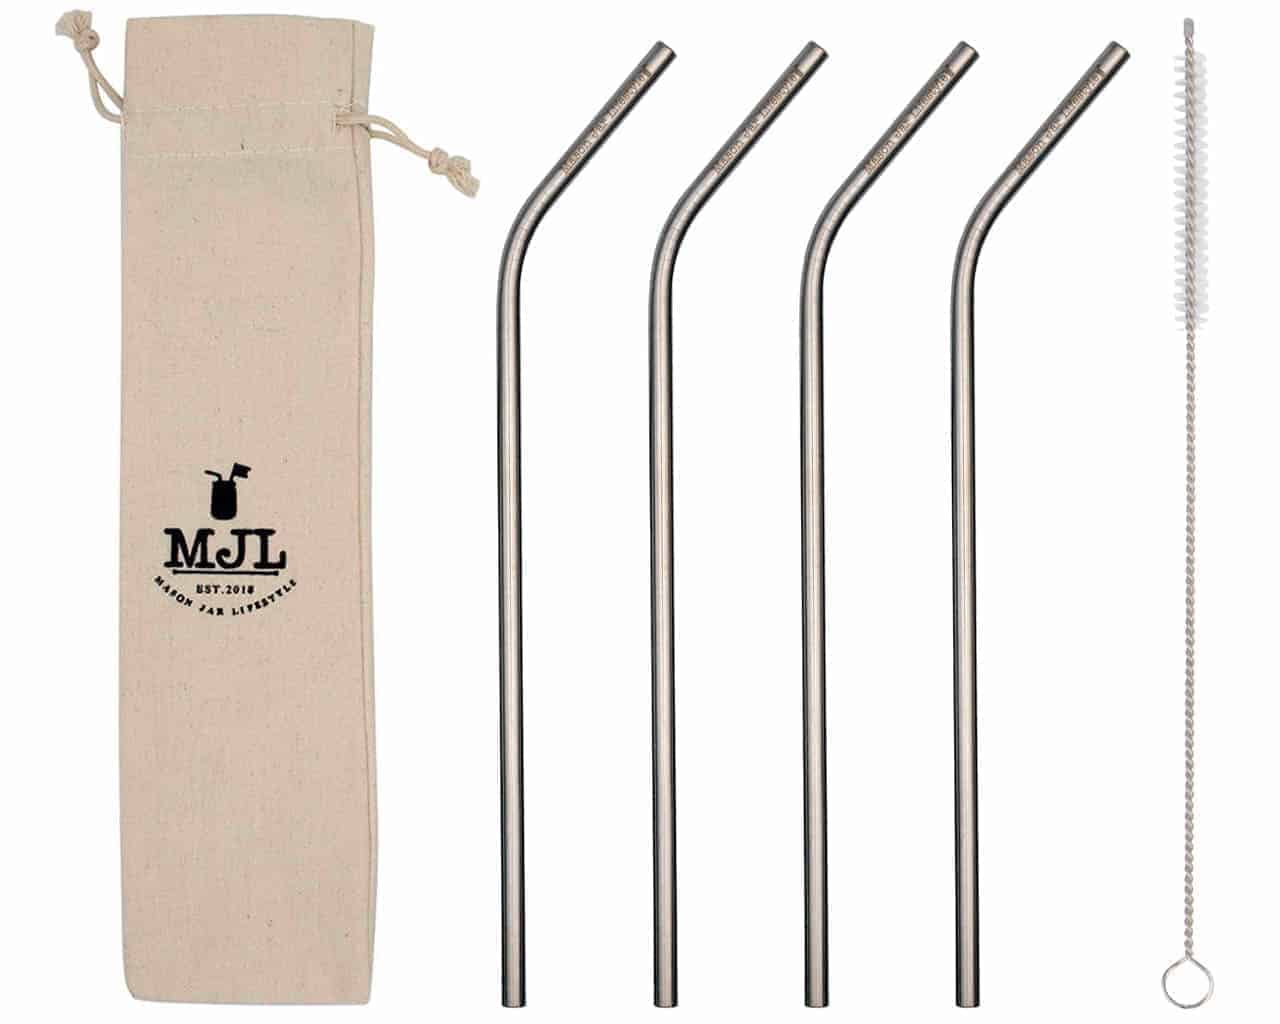 Mason Jar Lifestyle Long thin bent stainless steel metal straws for quart 32oz Mason jars, large cups, and tall glasses